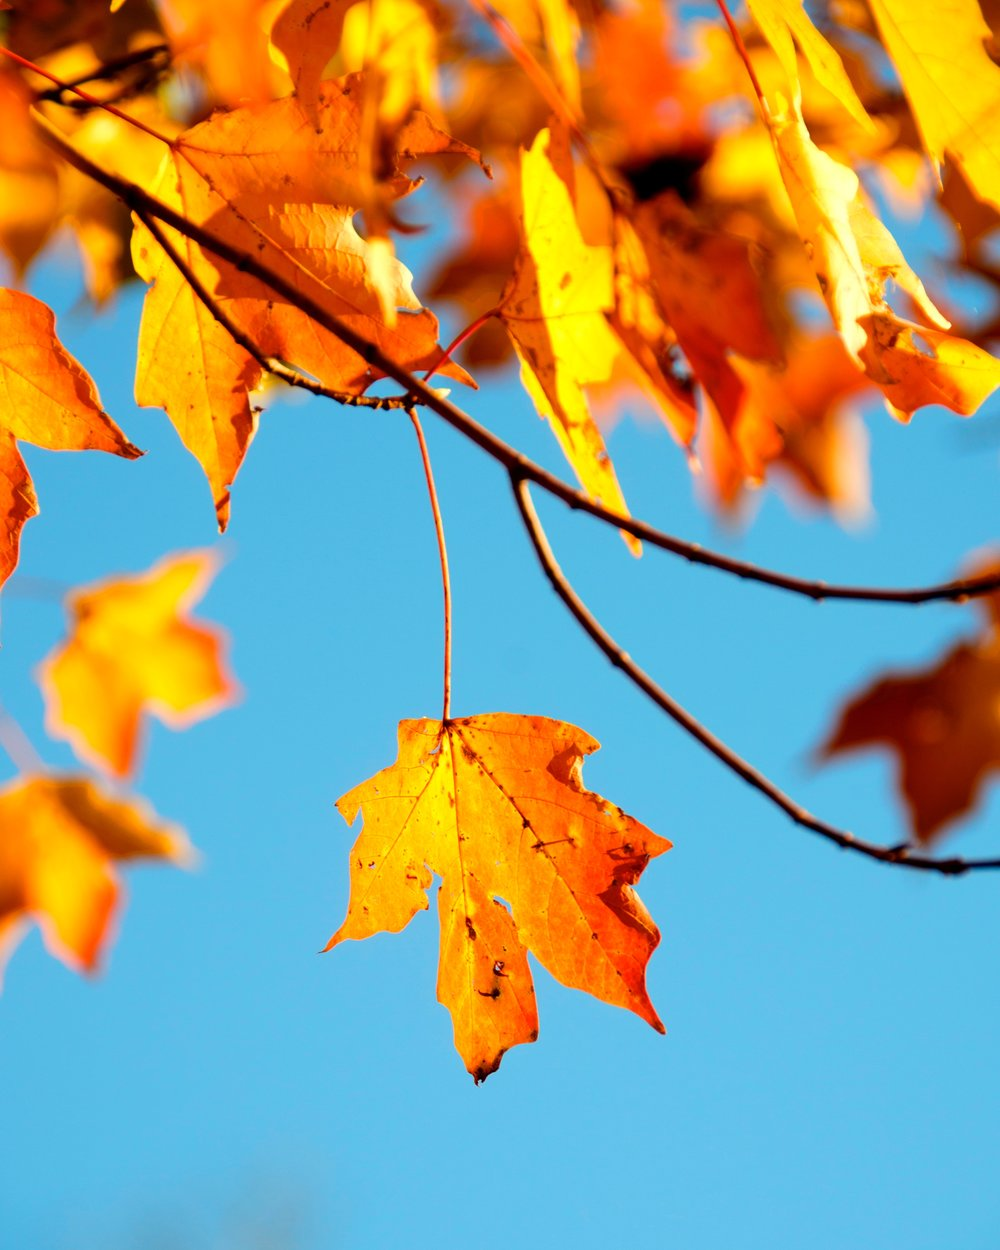 Autumn Hot Offer   From £109 per room for two nights & a bottle of fizz   Book Now